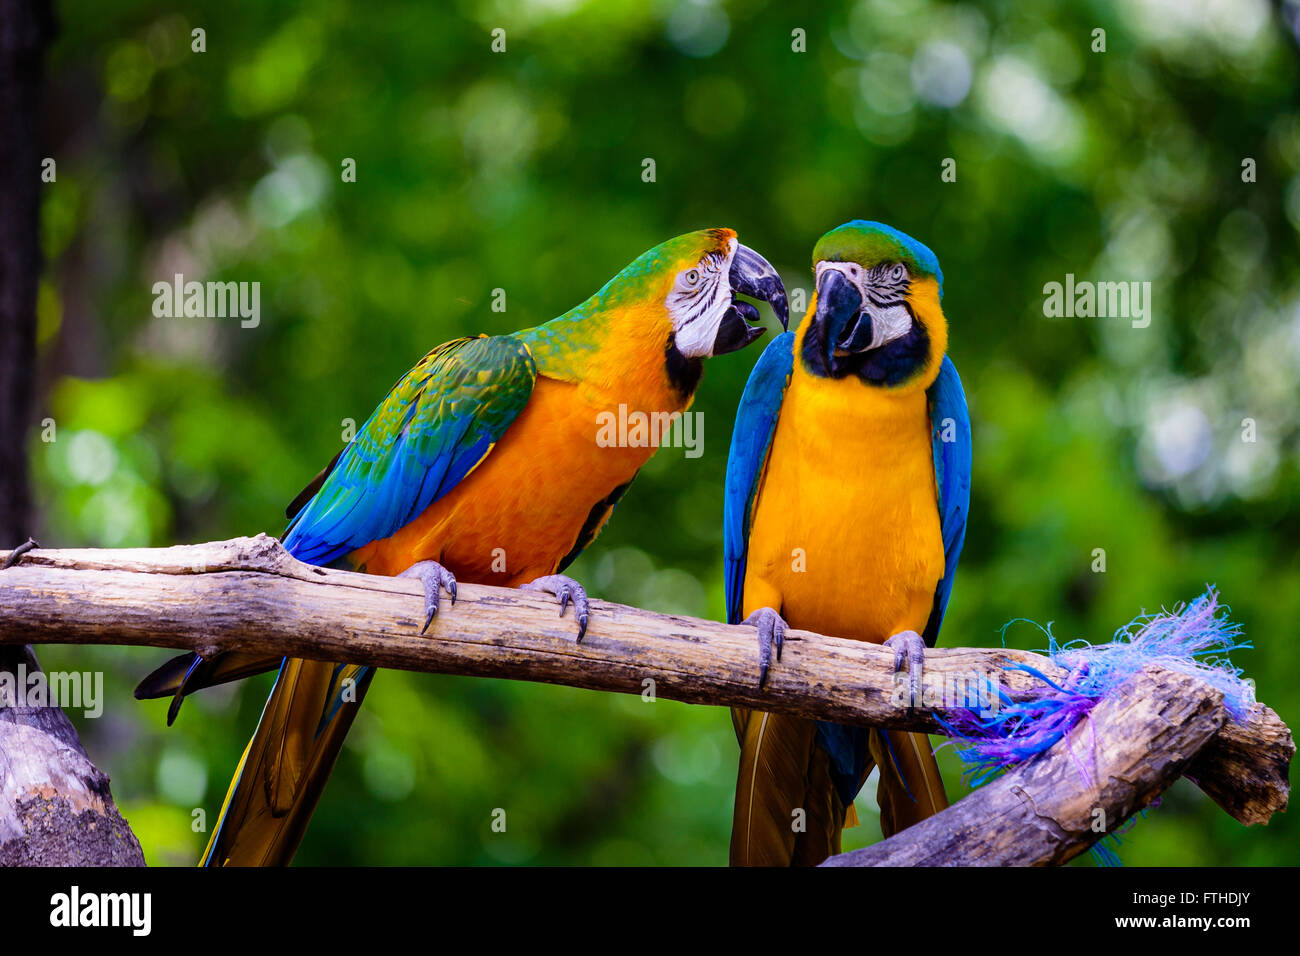 Two parrots on a perch - Stock Image